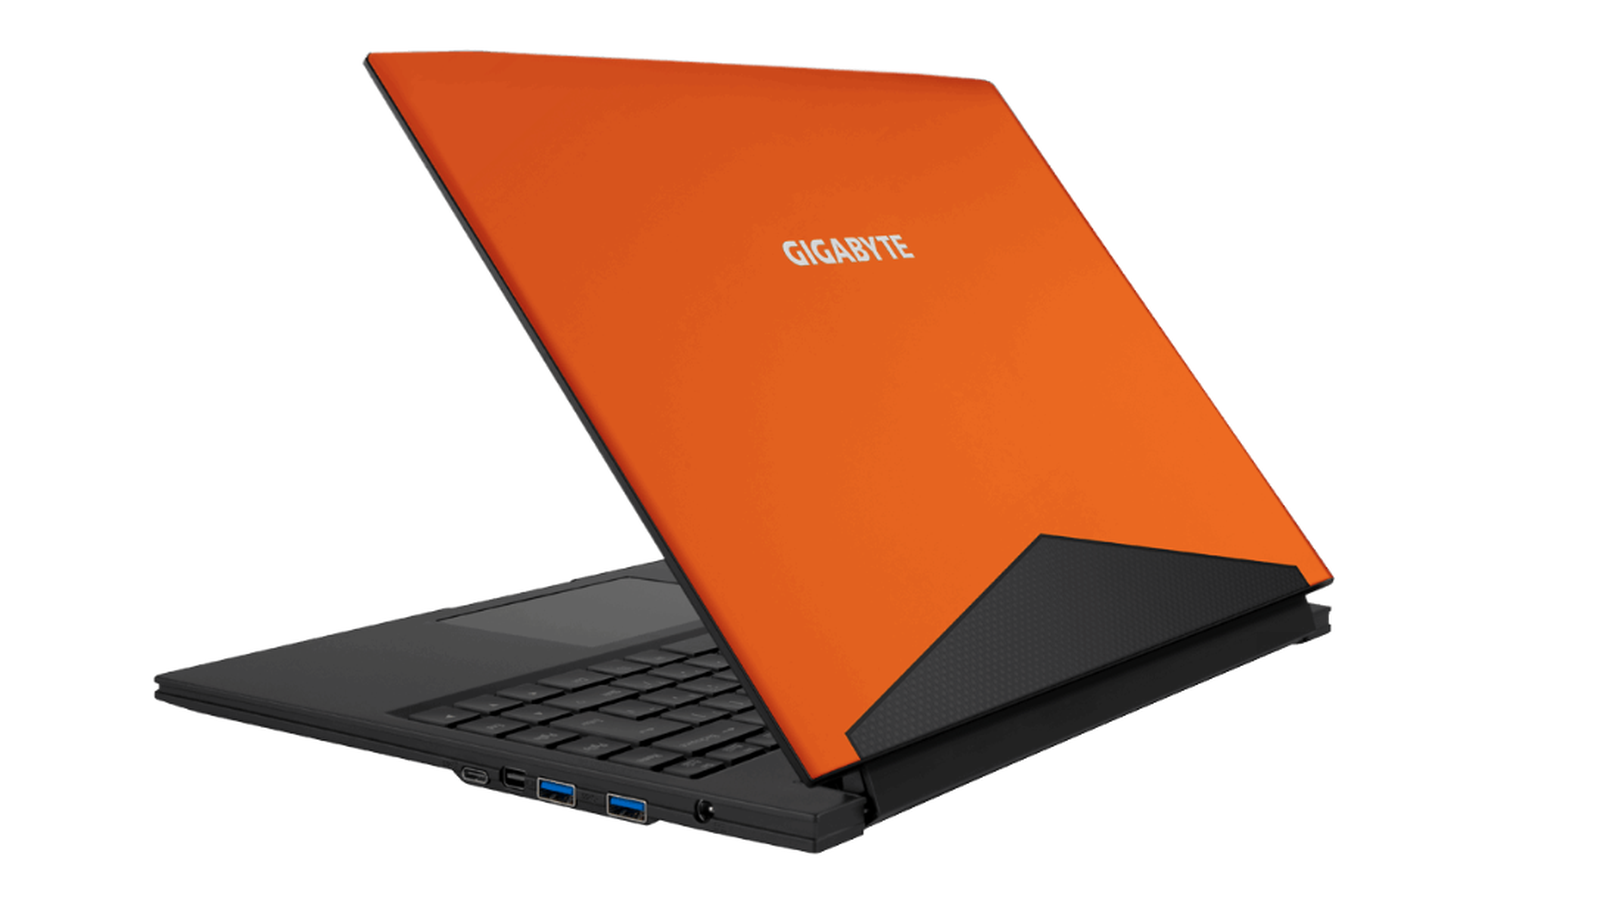 Gigabyte S Aero 14 Is A Gaming Laptop With 10 Hours Of Battery R Gaming Gaming Laptops Cheap Gaming Laptop Laptop